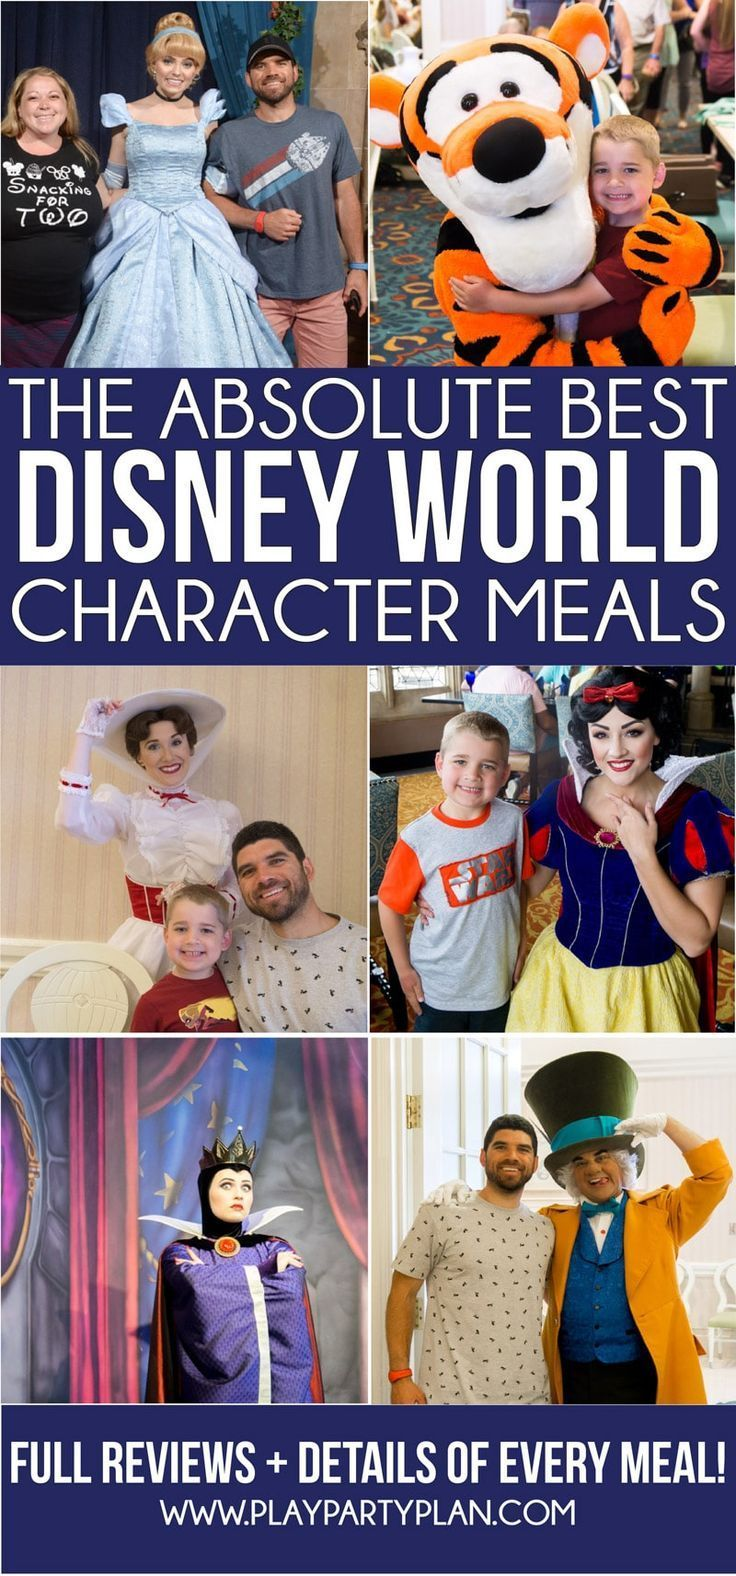 The ultimate guide to Disney World character dining updated for 2019! A list of best places to get breakfast, which resorts have character meals, best for families, and more! And individual reviews of every single Disney character meal! #disneycharacters